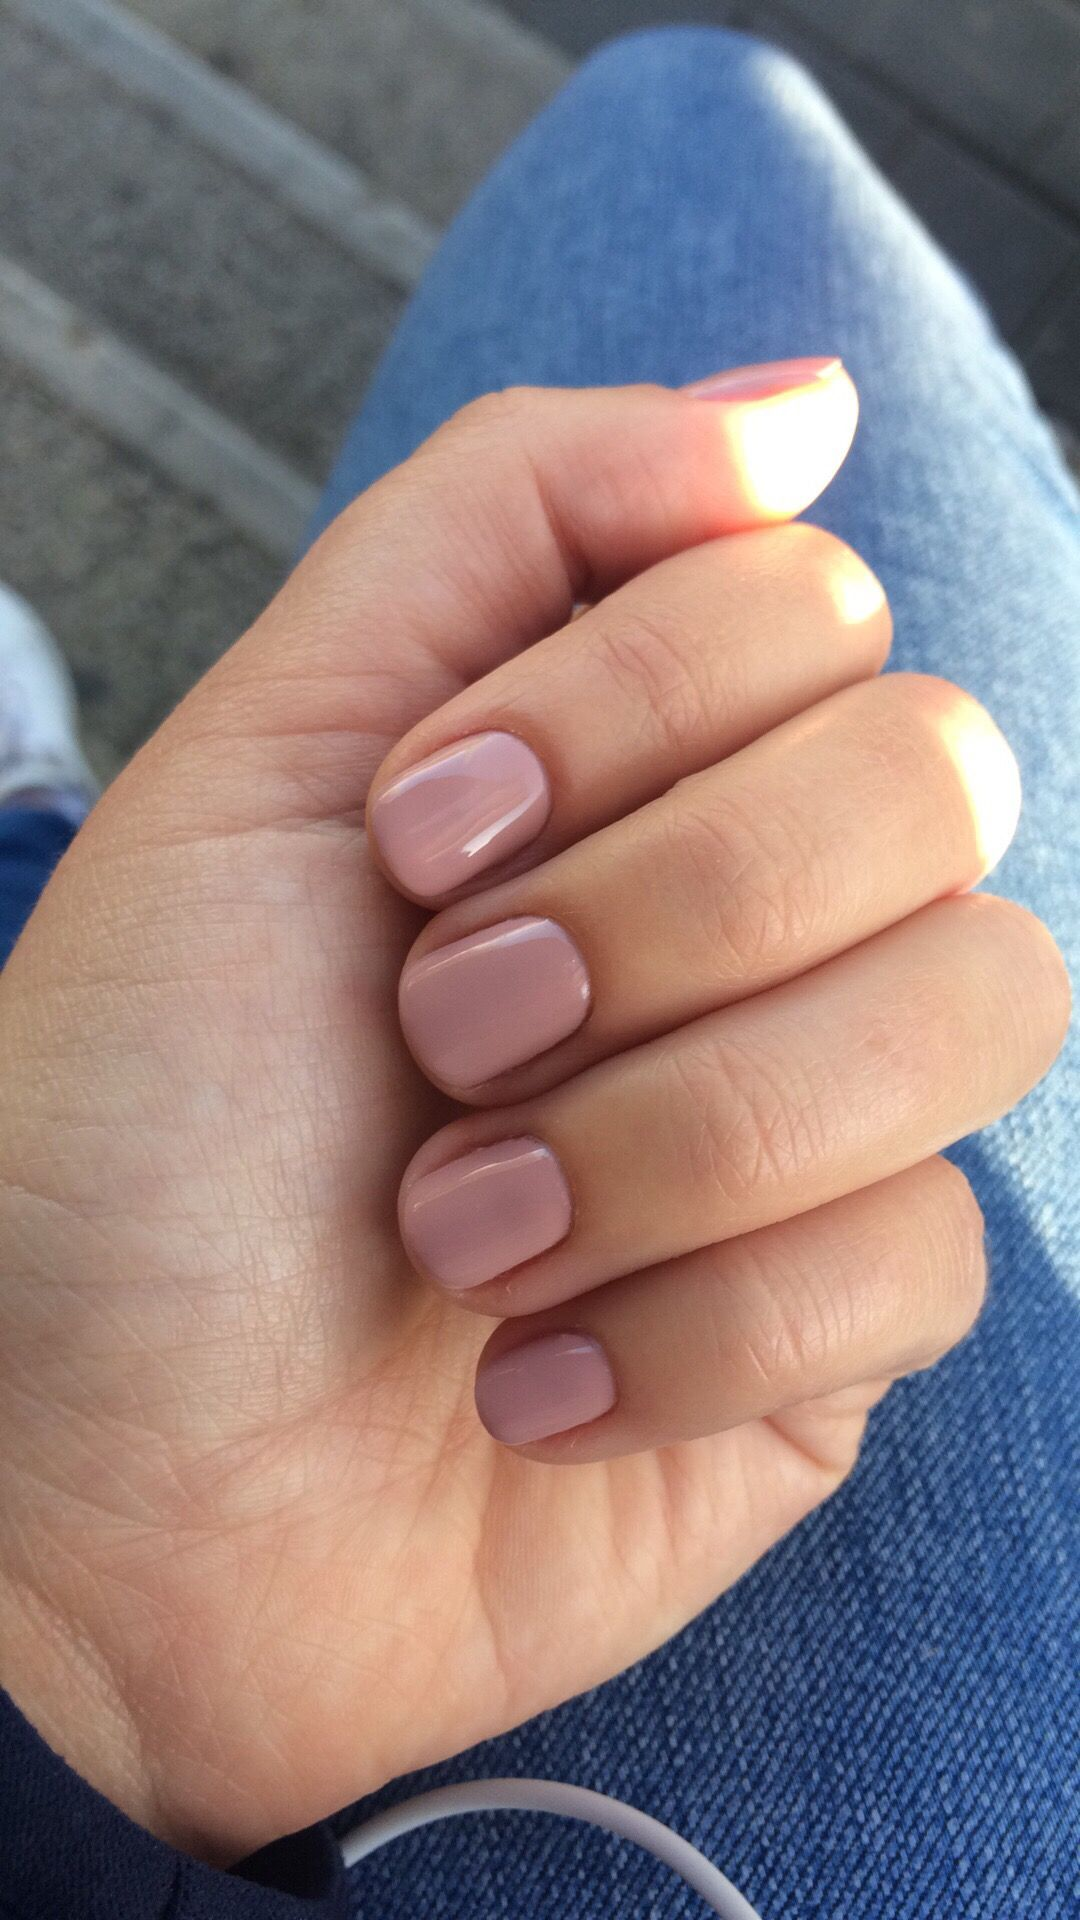 Pin By Rika Svigny On Ongles2 Pinterest Makeup Manicure And